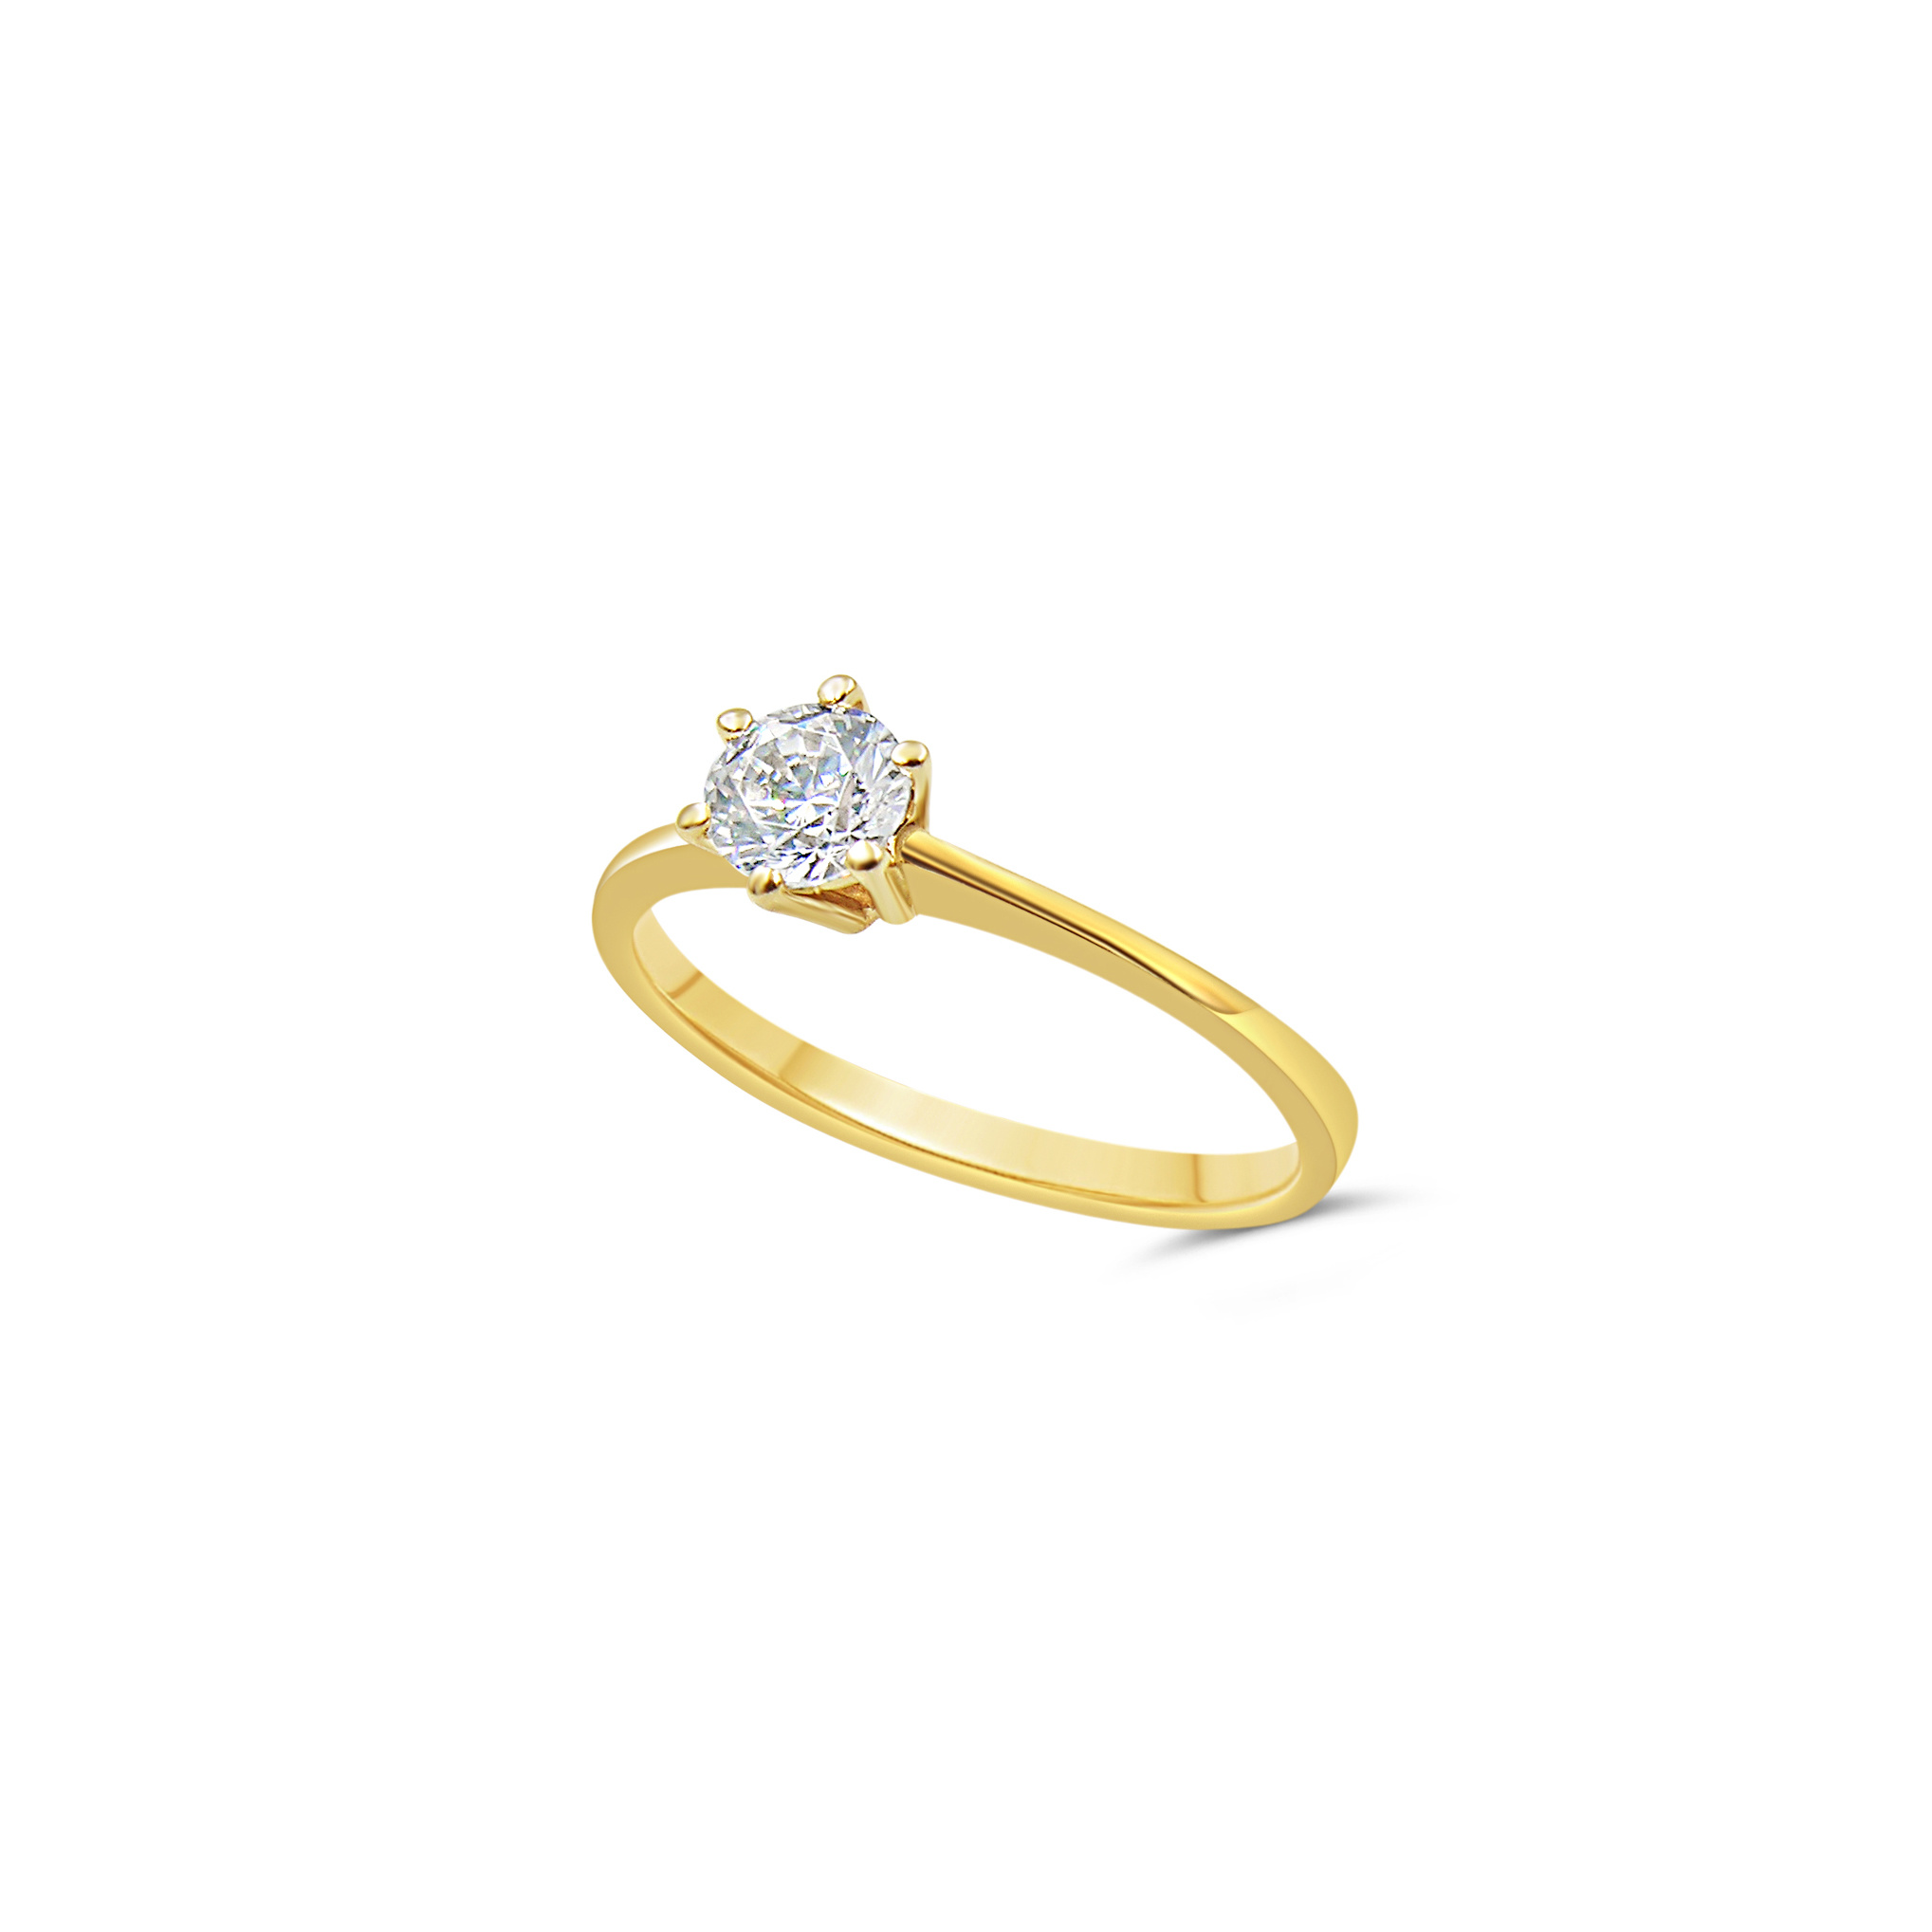 14kt yellow gold engagement ring with zirconia